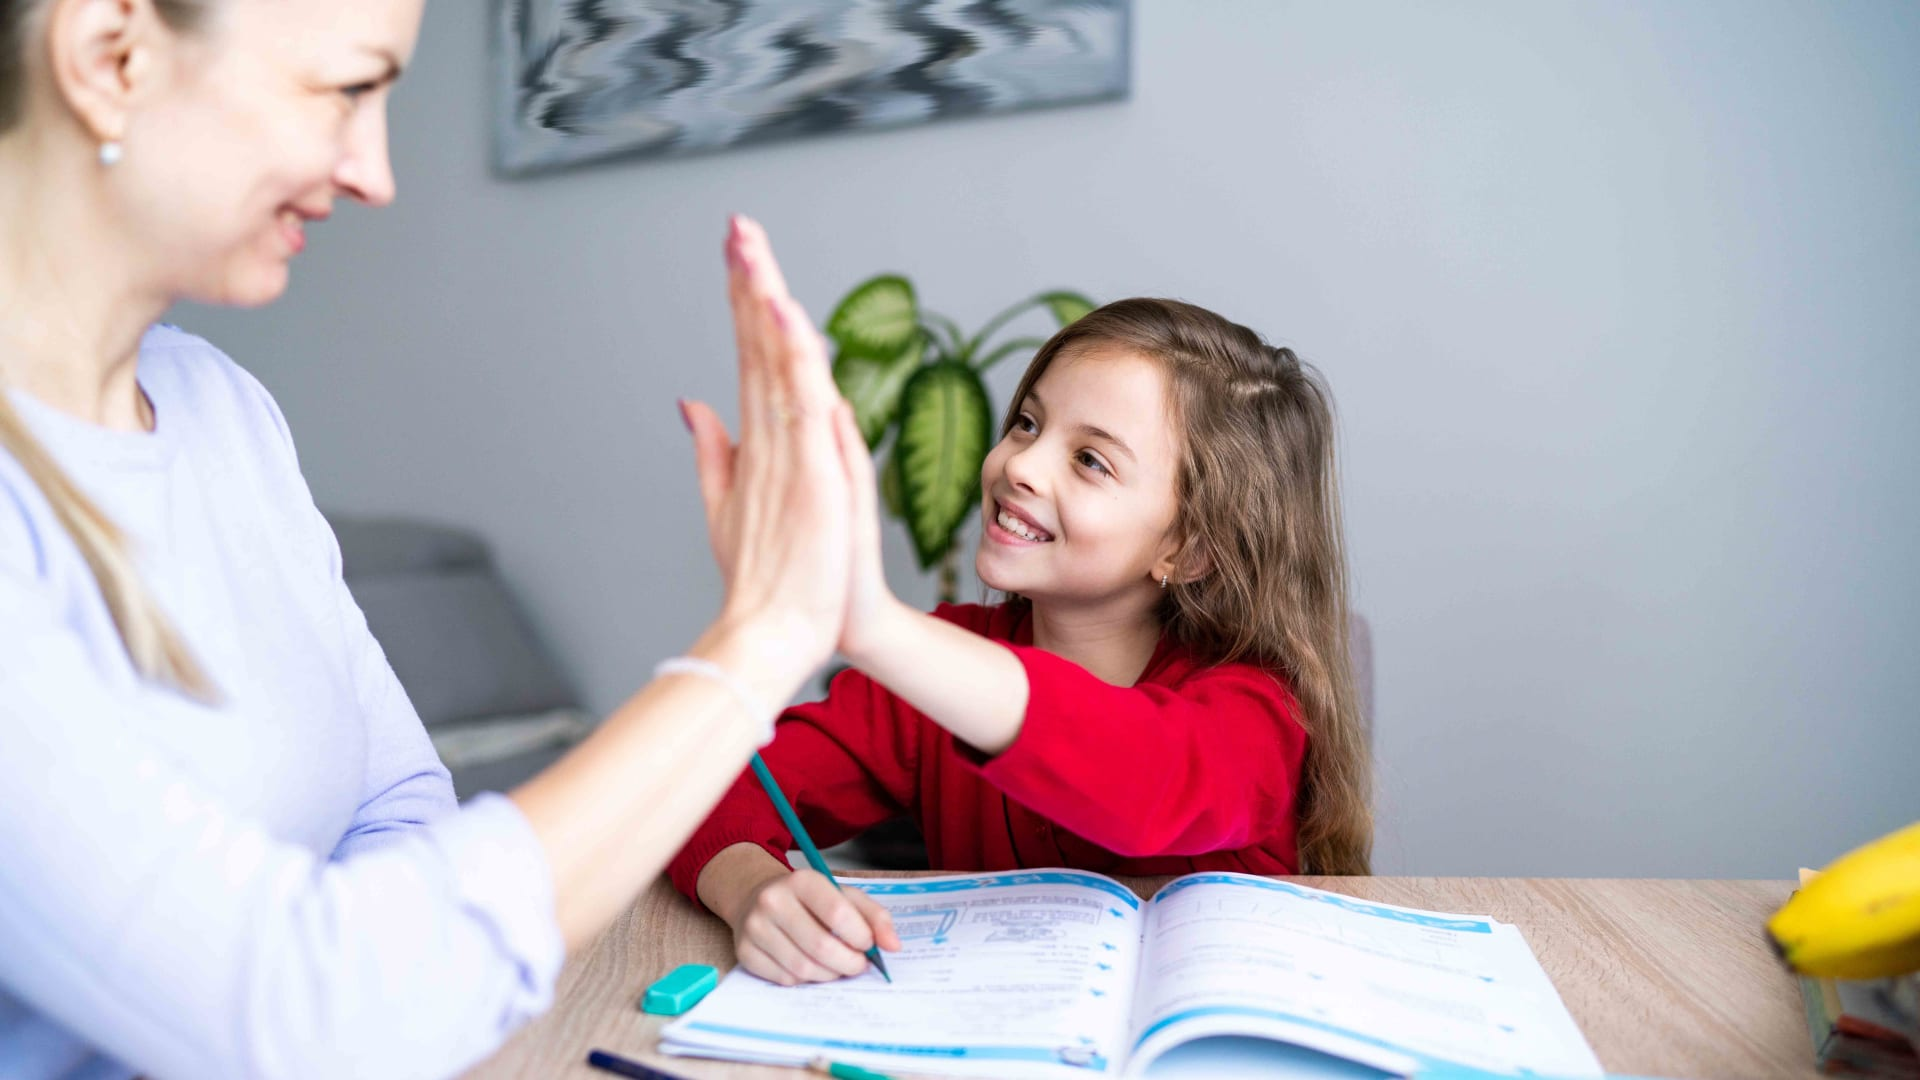 Want to Raise Successful Kids? Science Says These 7 Habits Lead to Great Outcomes